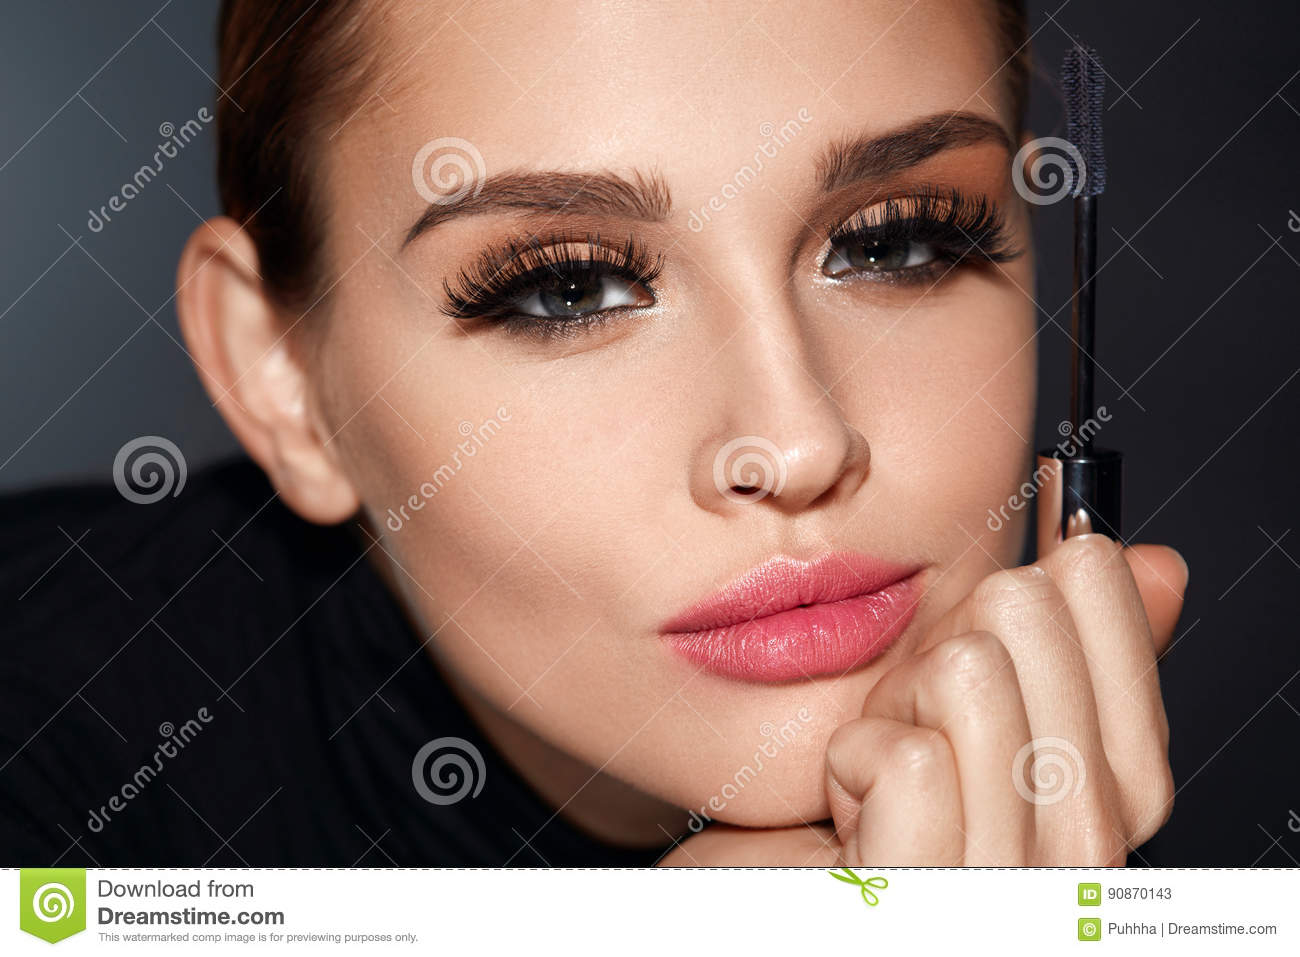 0a3e6c0caf8 Closeup Of Woman With Beautiful Face And Mascara Brush In Hand. Portrait Of Glamorous  Girl With Perfect Makeup, Smooth Skin And Long Black Fake Eyelashes On ...